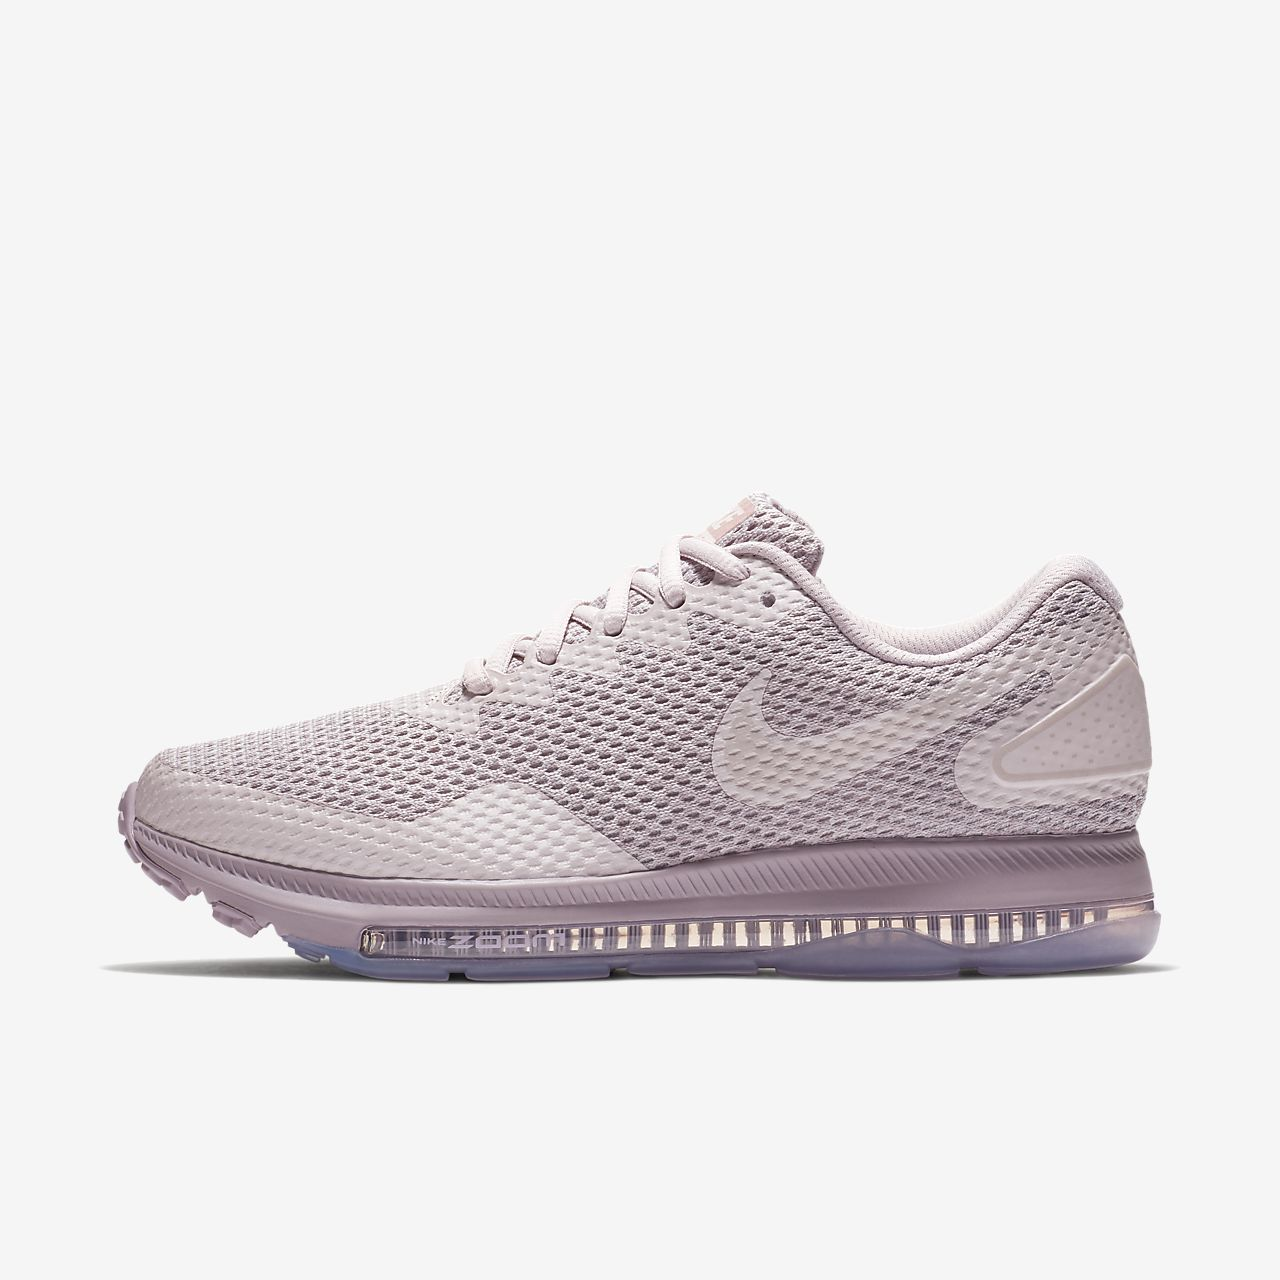 sale retailer 6cc8b 3f305 ... Calzado de running para mujer Nike Zoom All Out Low 2